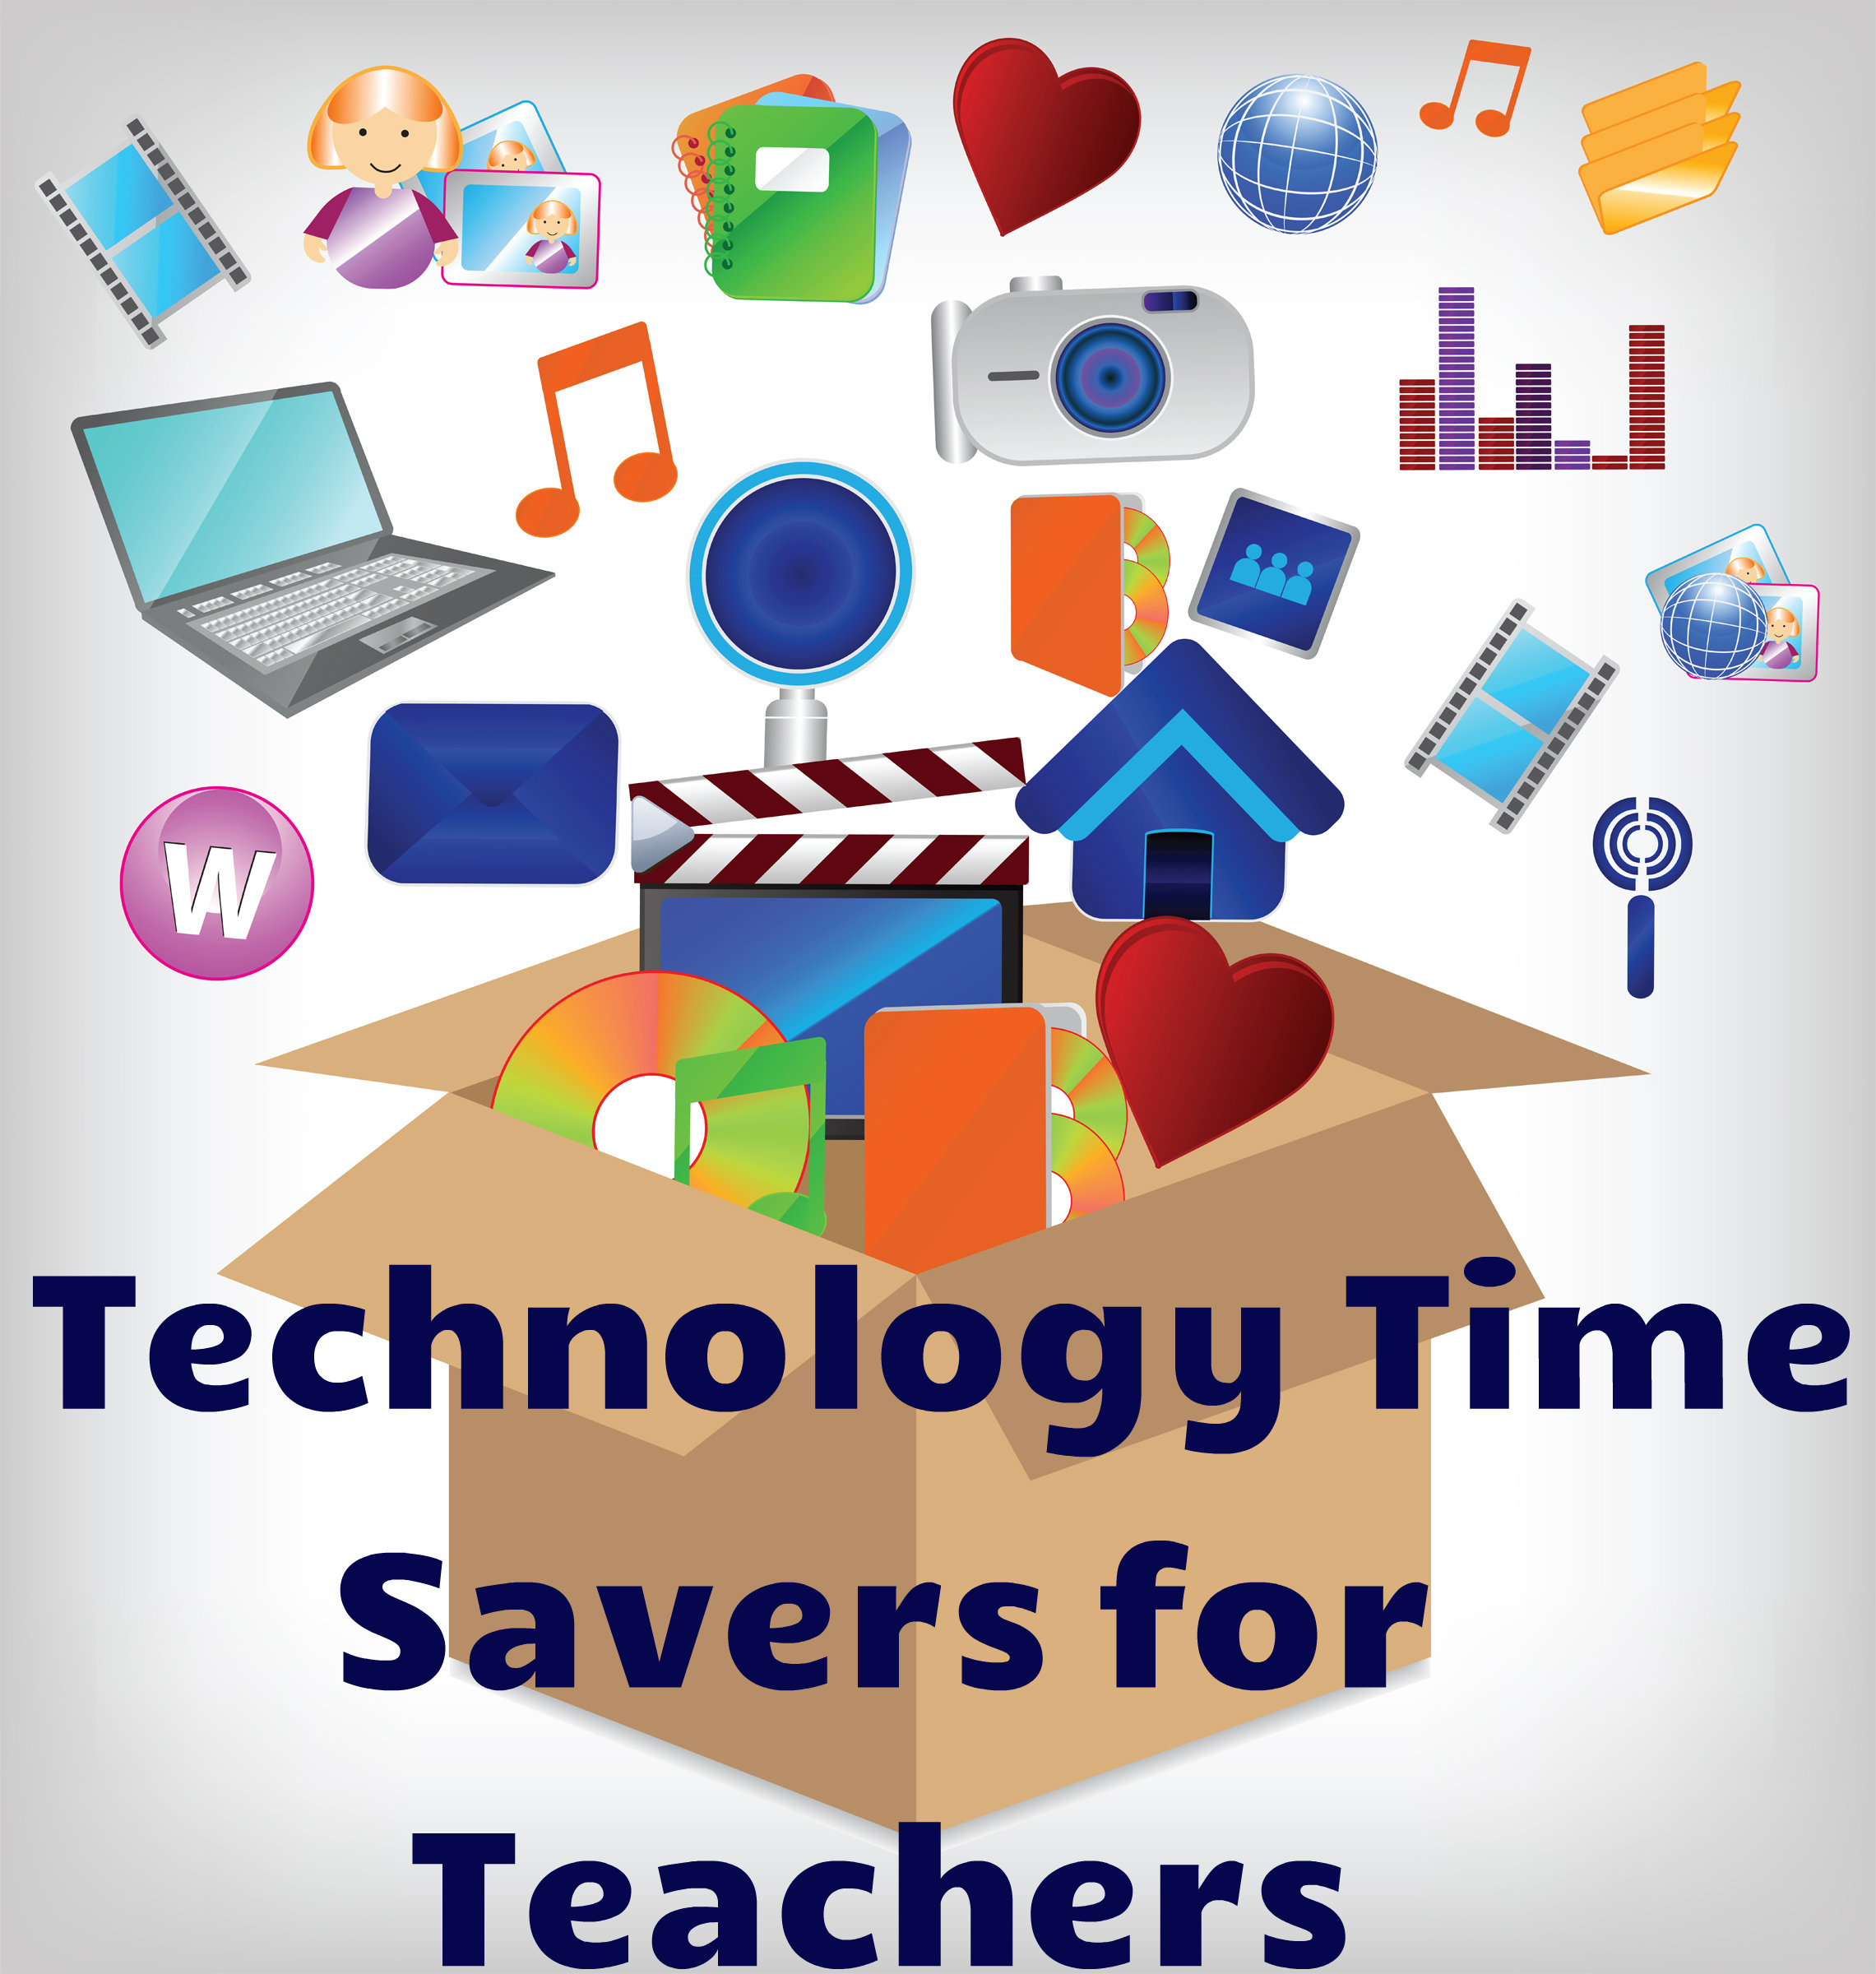 Technology Time Savers for Teachers